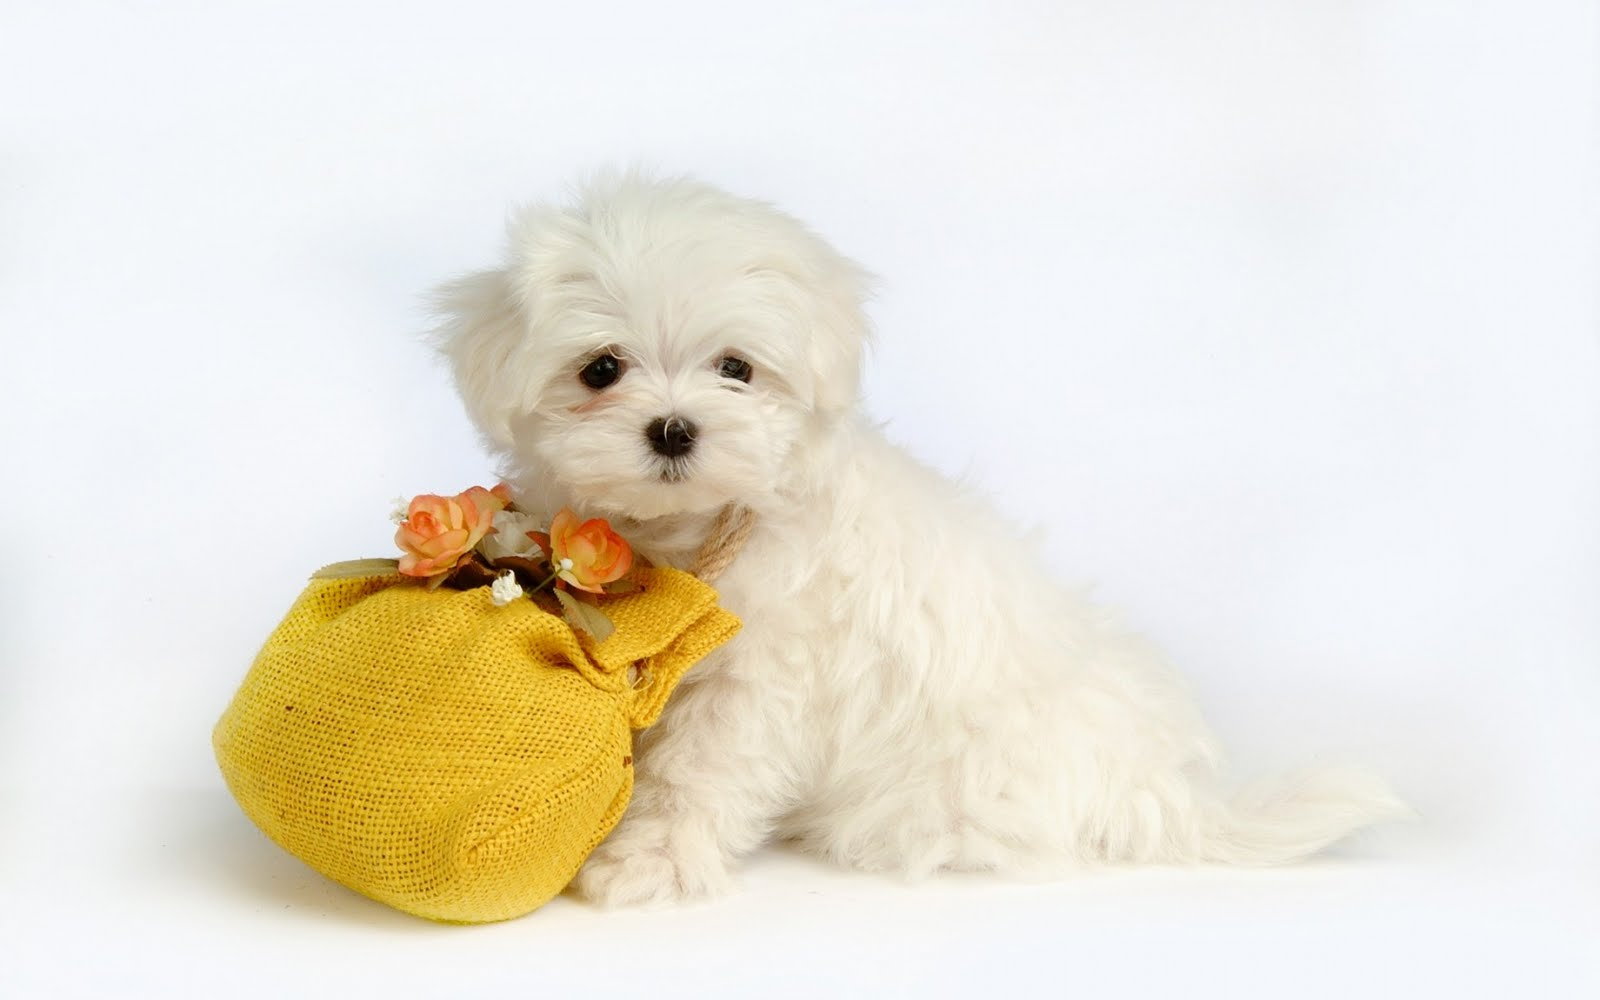 Cute Puppy Wallpaper  Wide,1680x1050  Hd Wallpaper